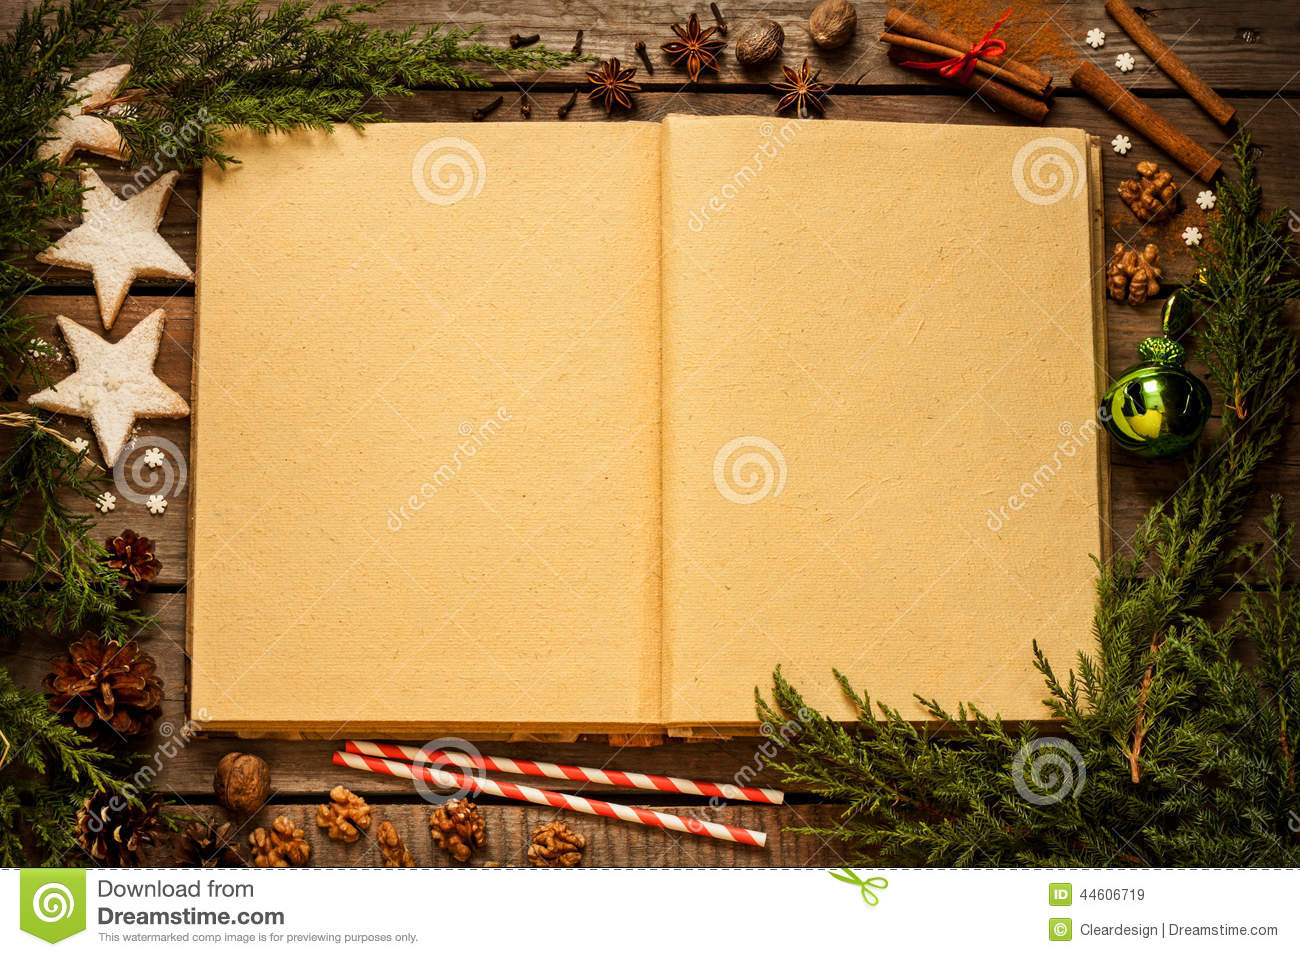 Old blank opened book with christmas decorations around on wood